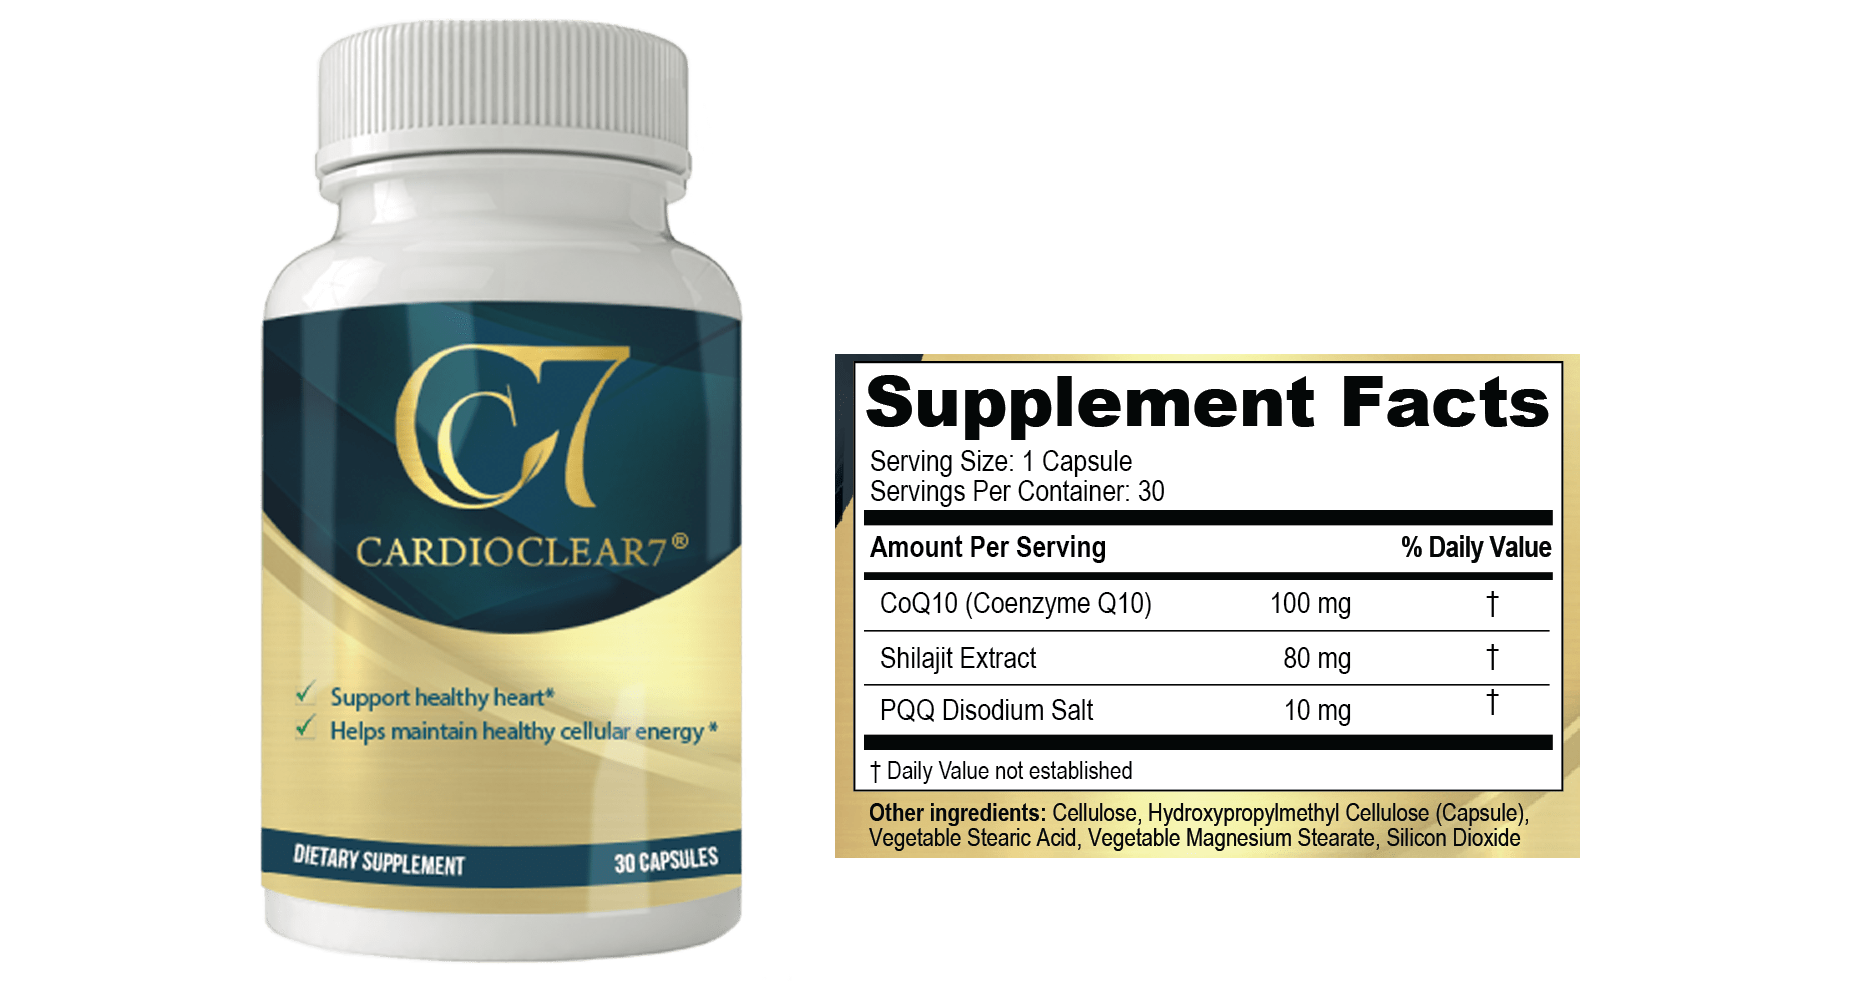 Cardio Clear 7 Ingredients Label